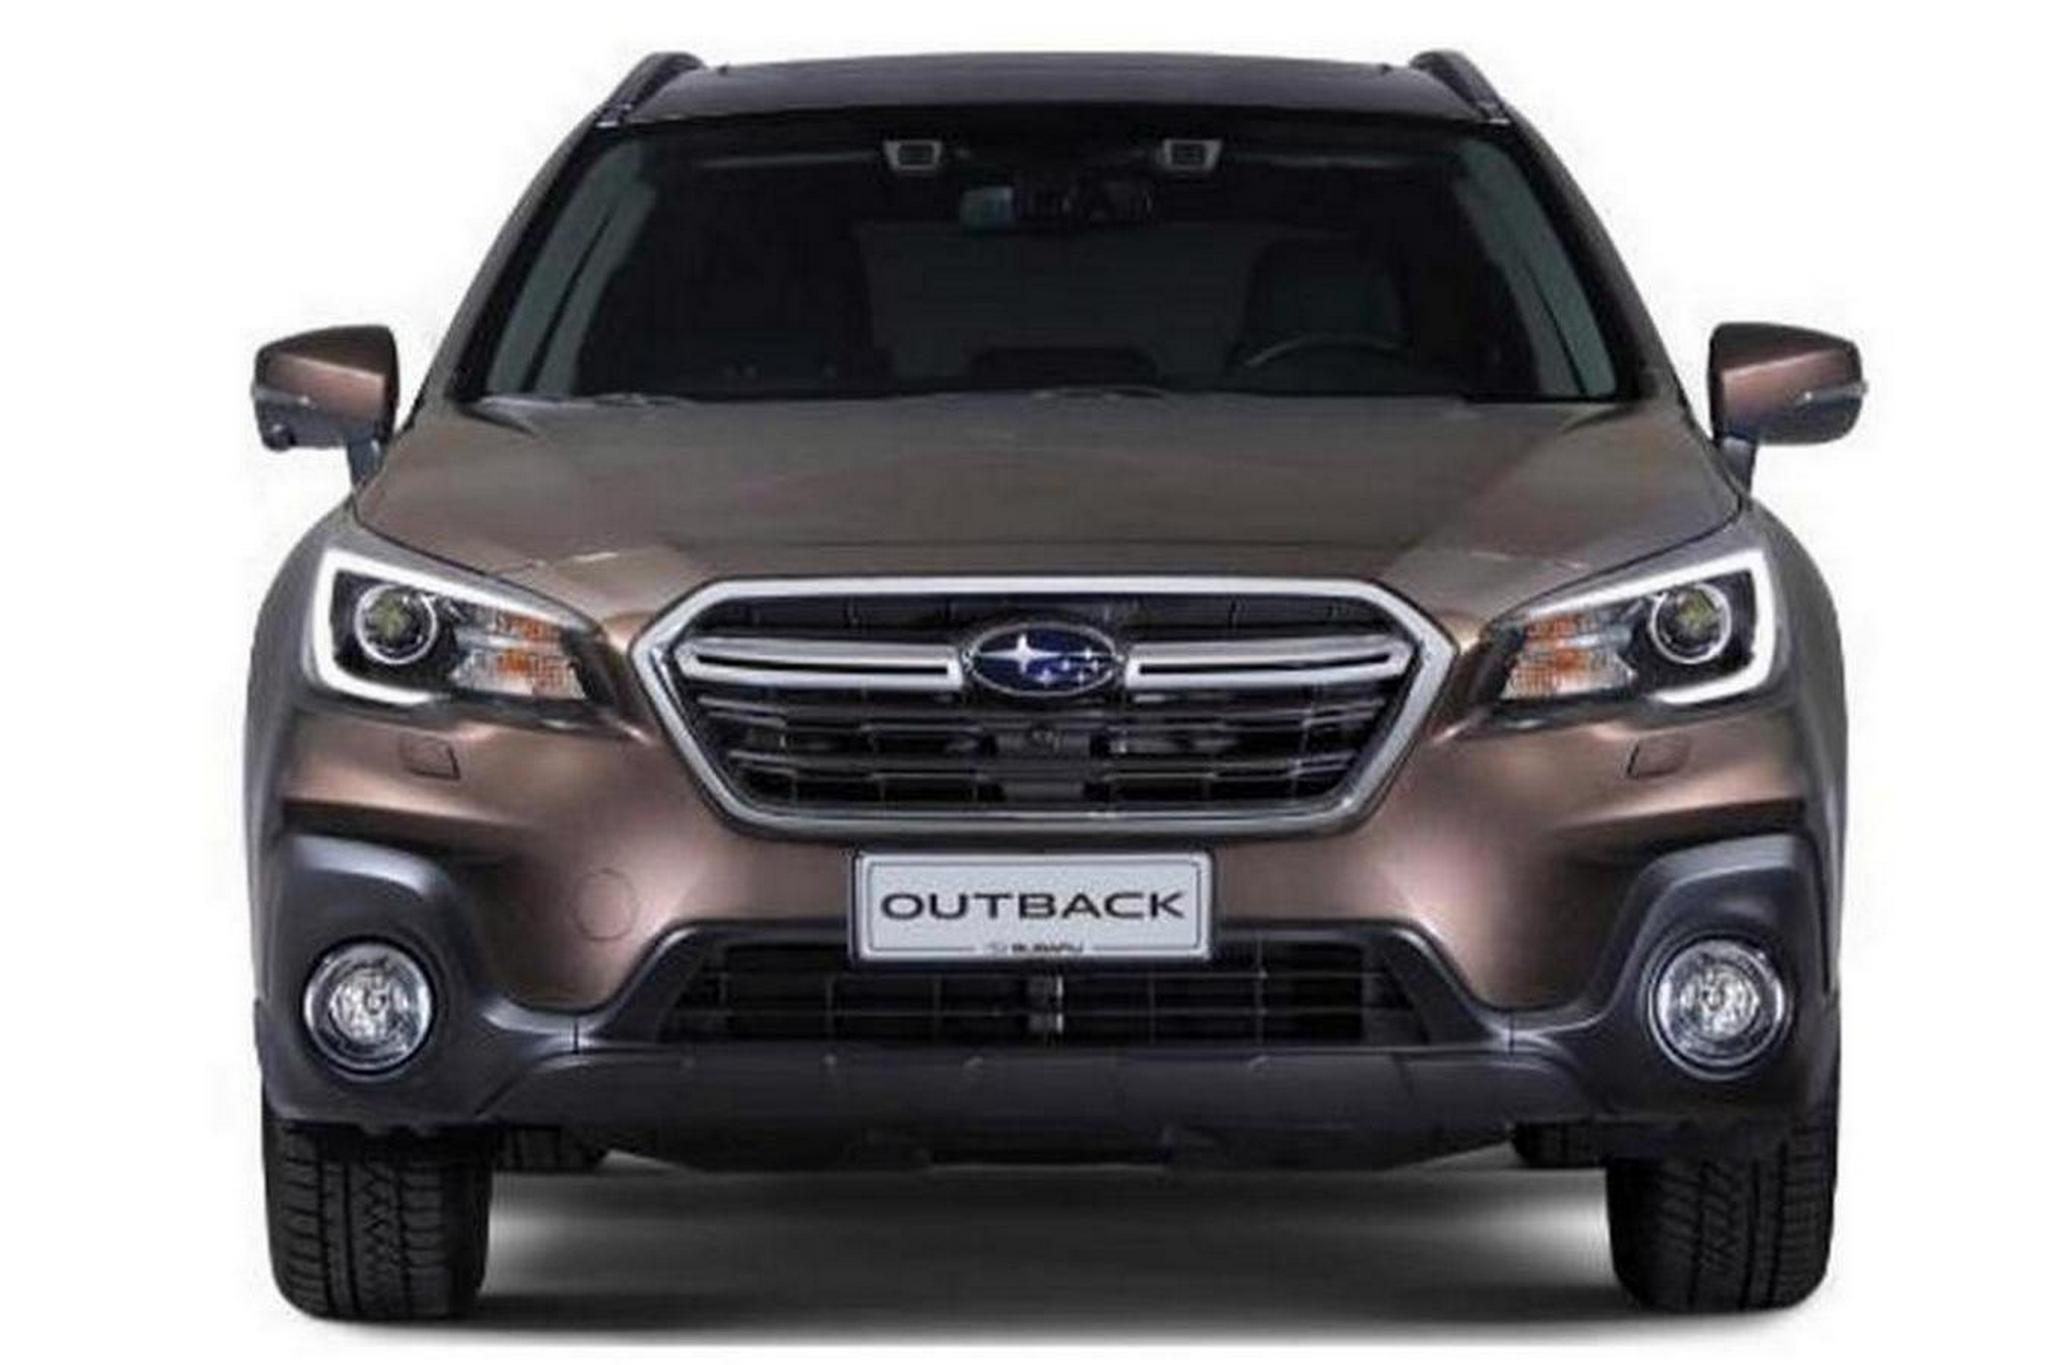 Subaru Outback Model Year 2018